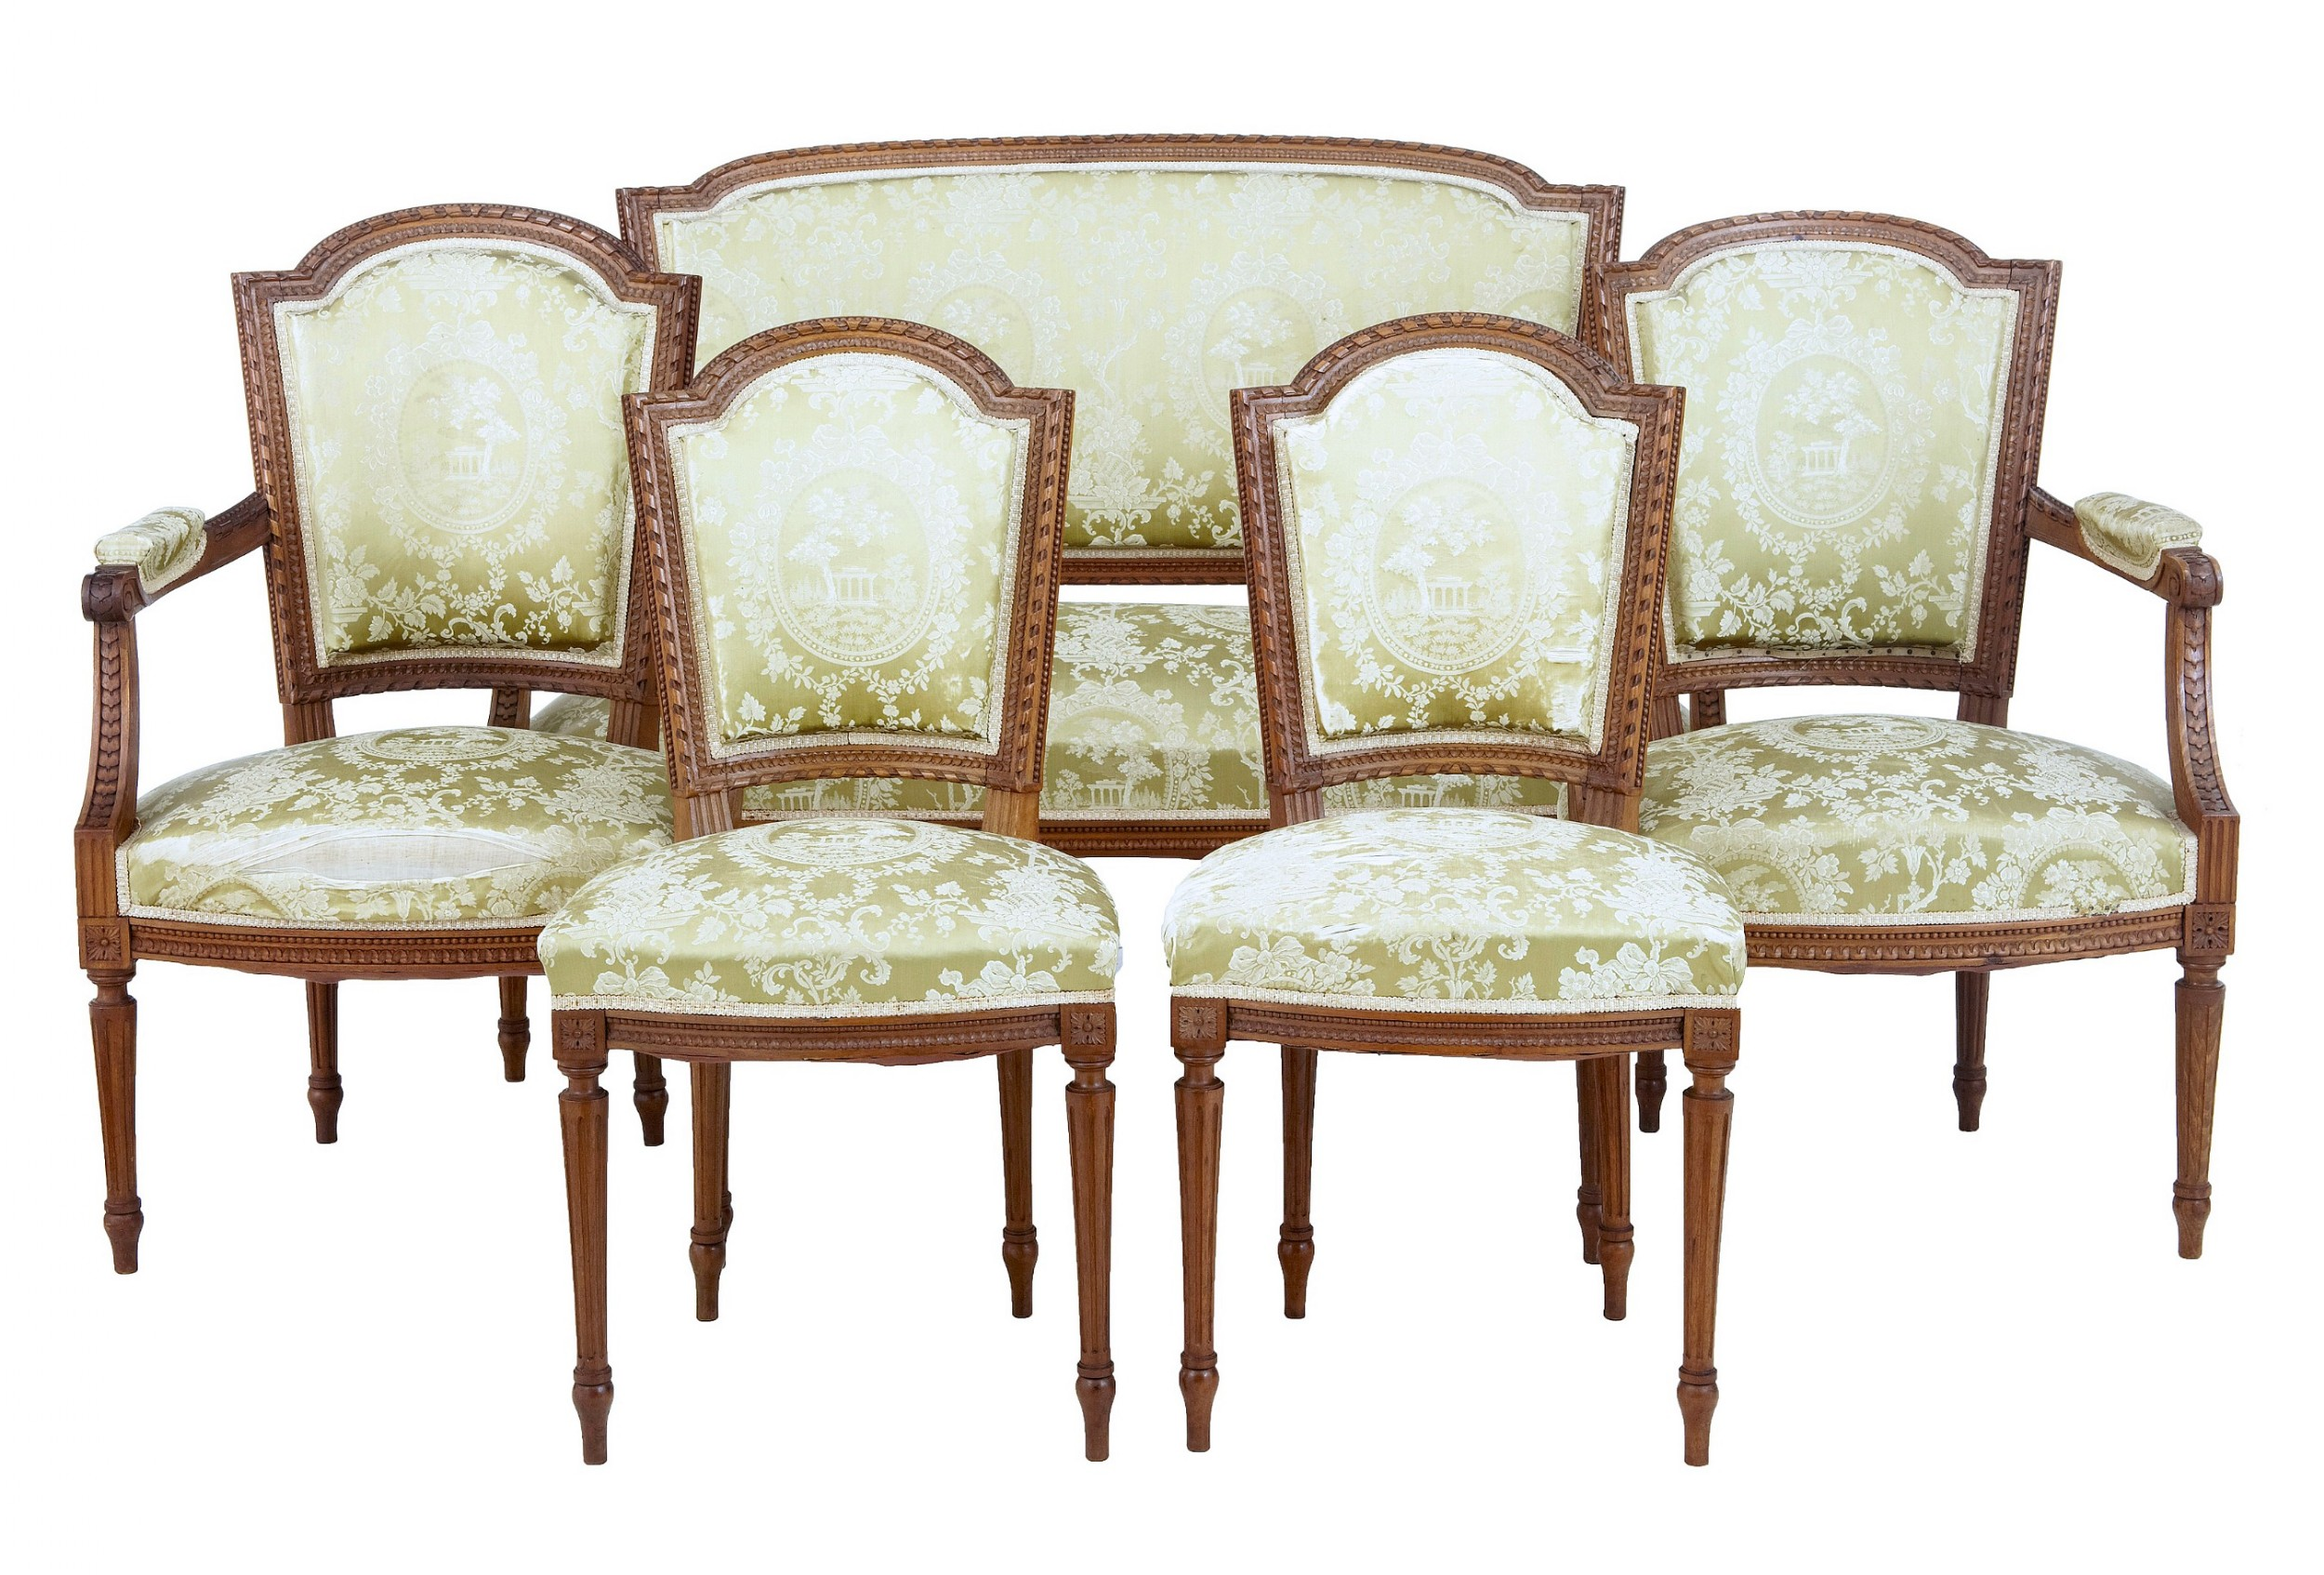 5 piece 19th century carved walnut french salon suite